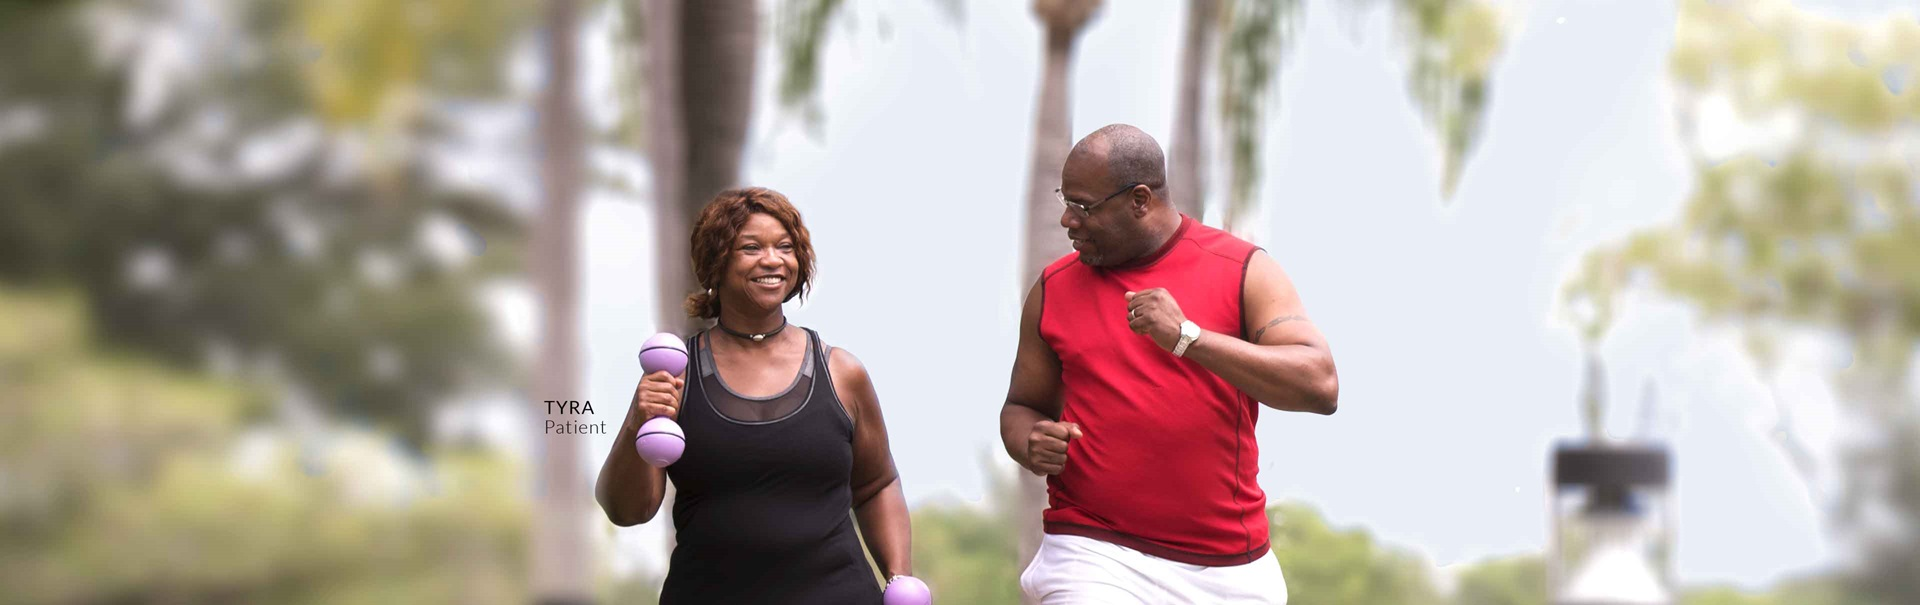 tyra weightloss patient